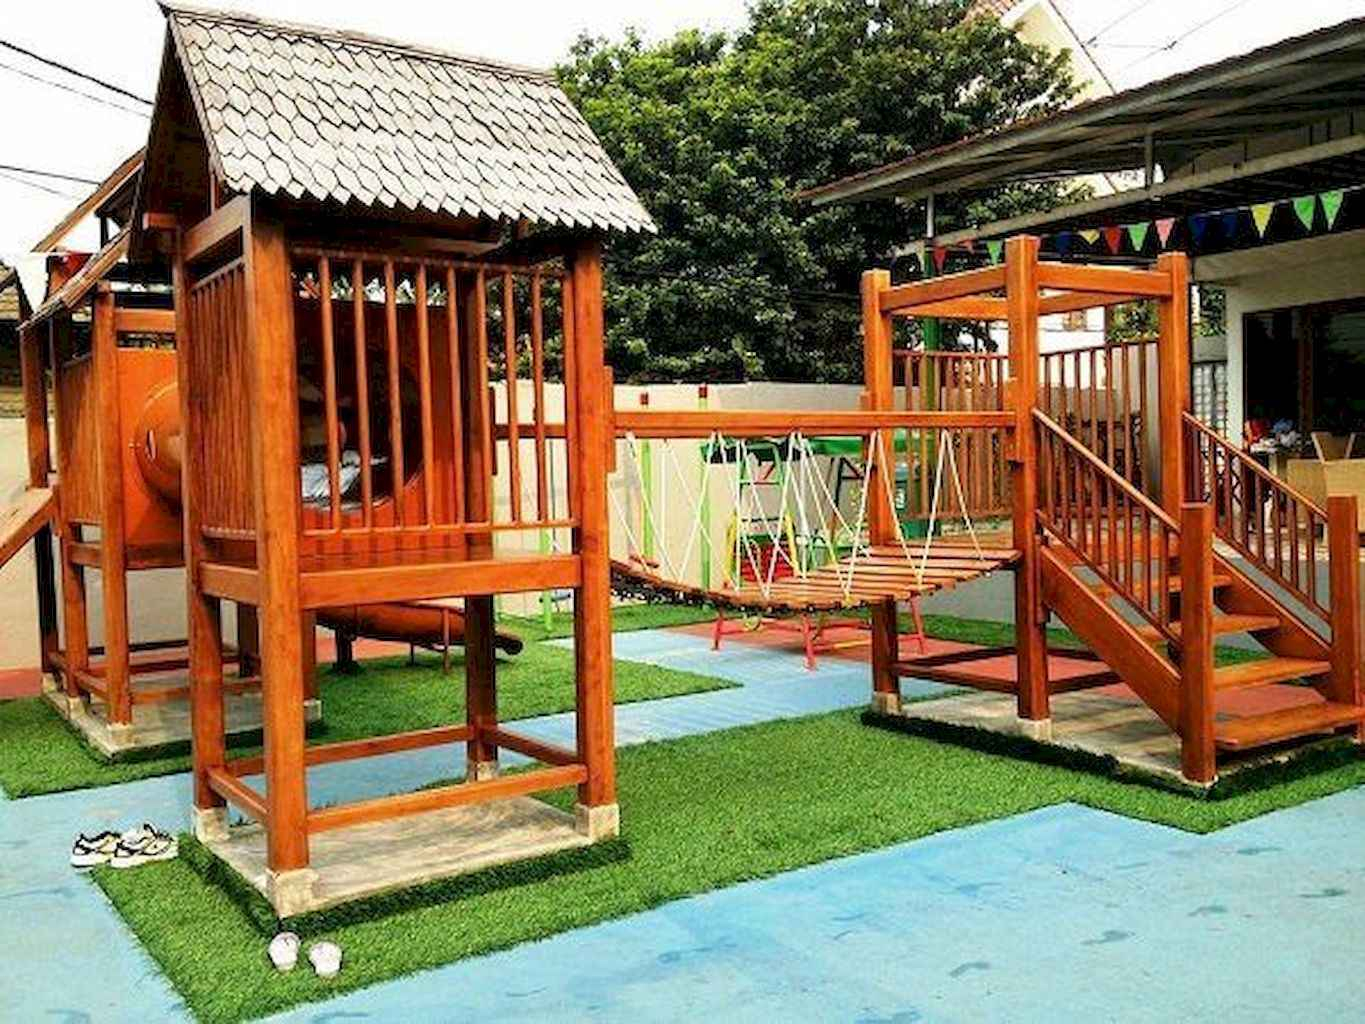 65 Creative Small Backyard Playground Kids Design Ideas Frontbackhome pertaining to 15 Some of the Coolest Initiatives of How to Upgrade Creative Backyard Playground Ideas